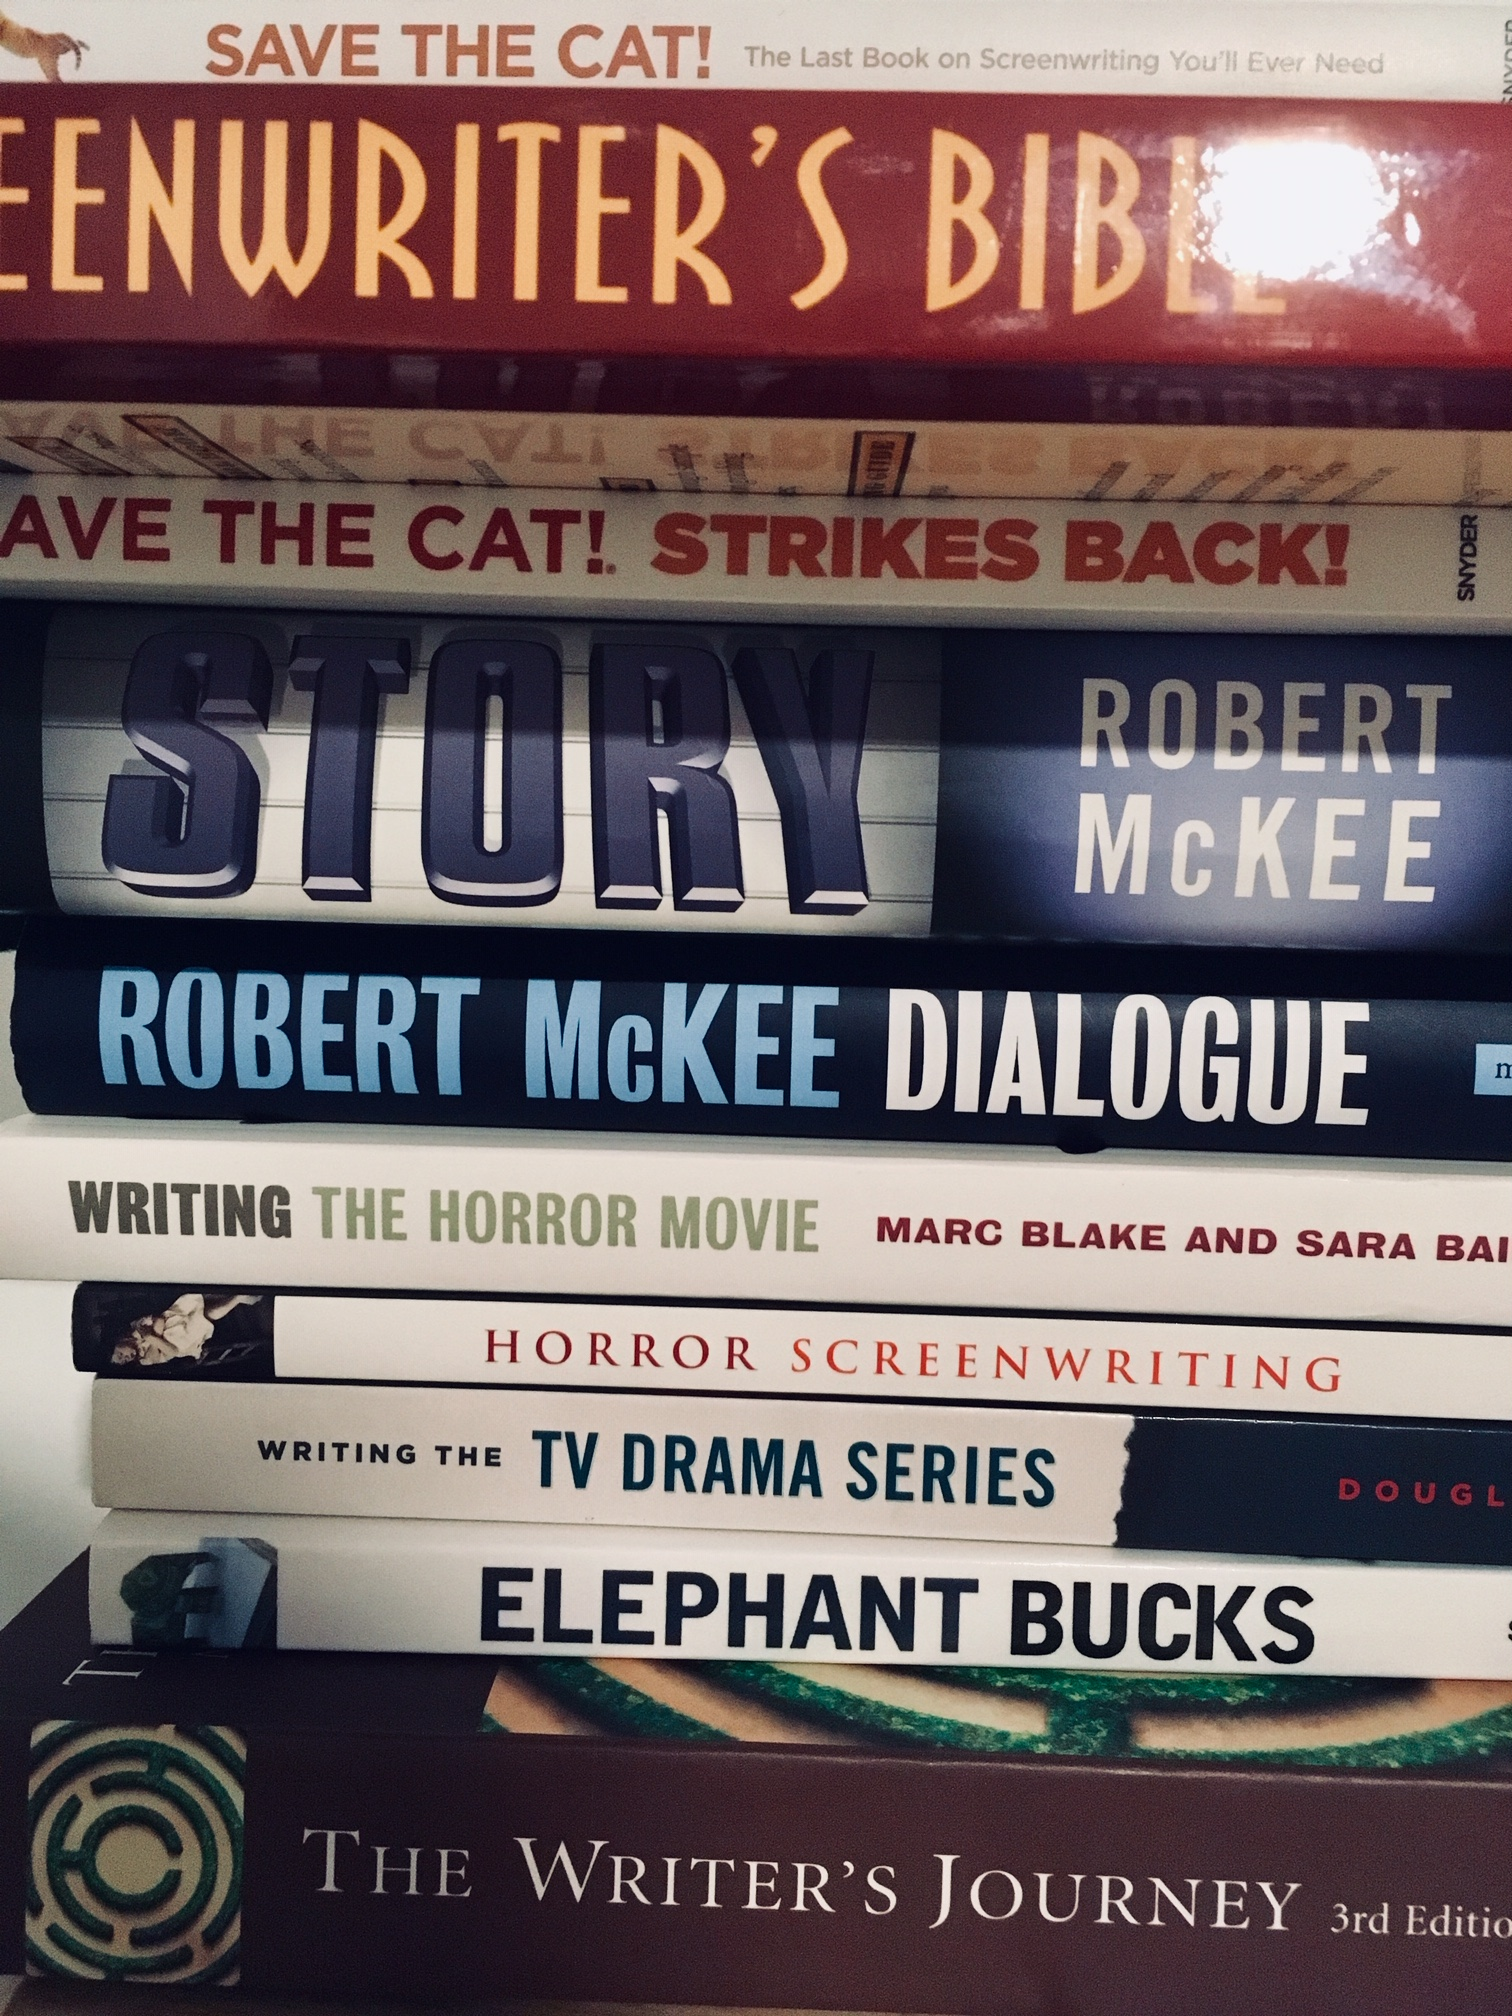 Save the Cat!  and other screenwriting books.